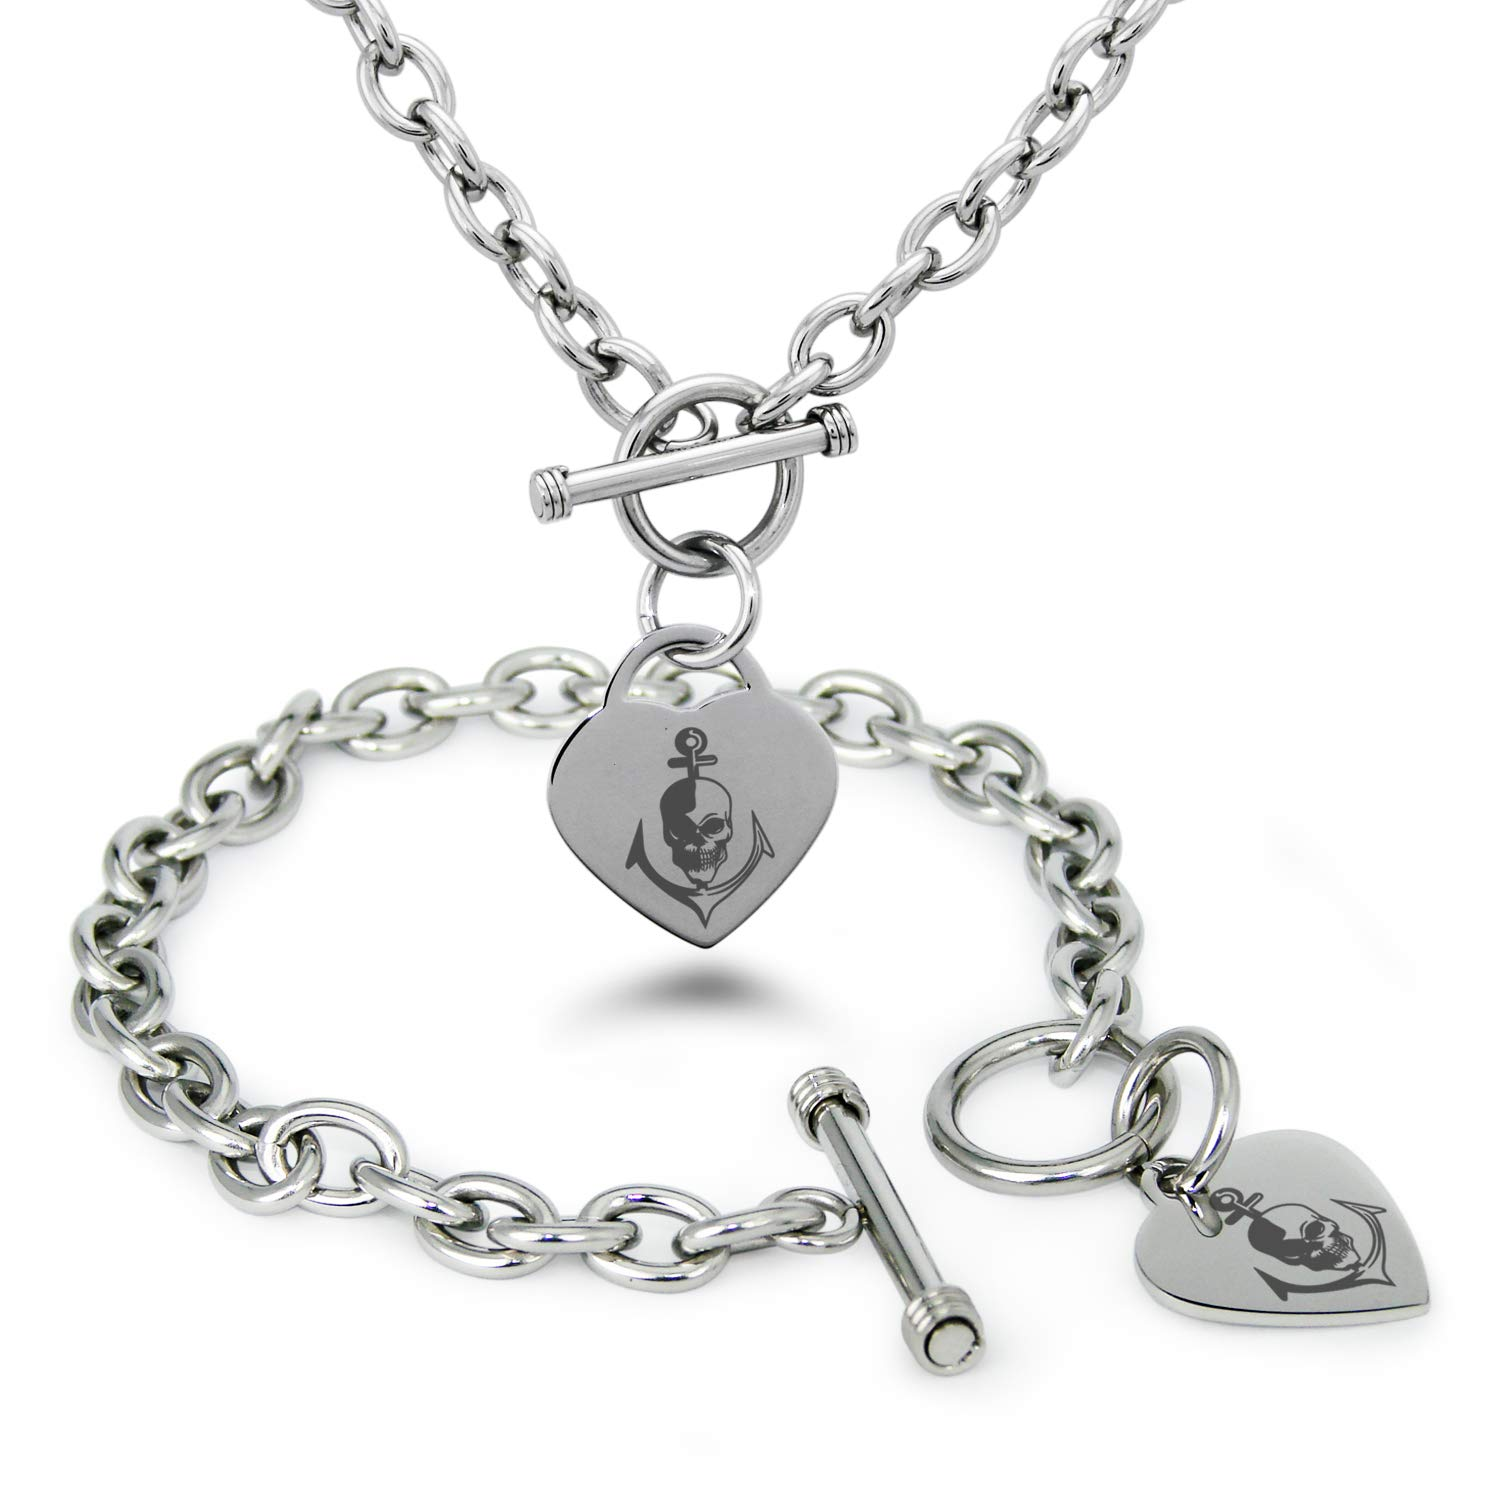 Tioneer Stainless Steel Nautical Anchor /& Skull Heart Charm Bracelet /& Necklace